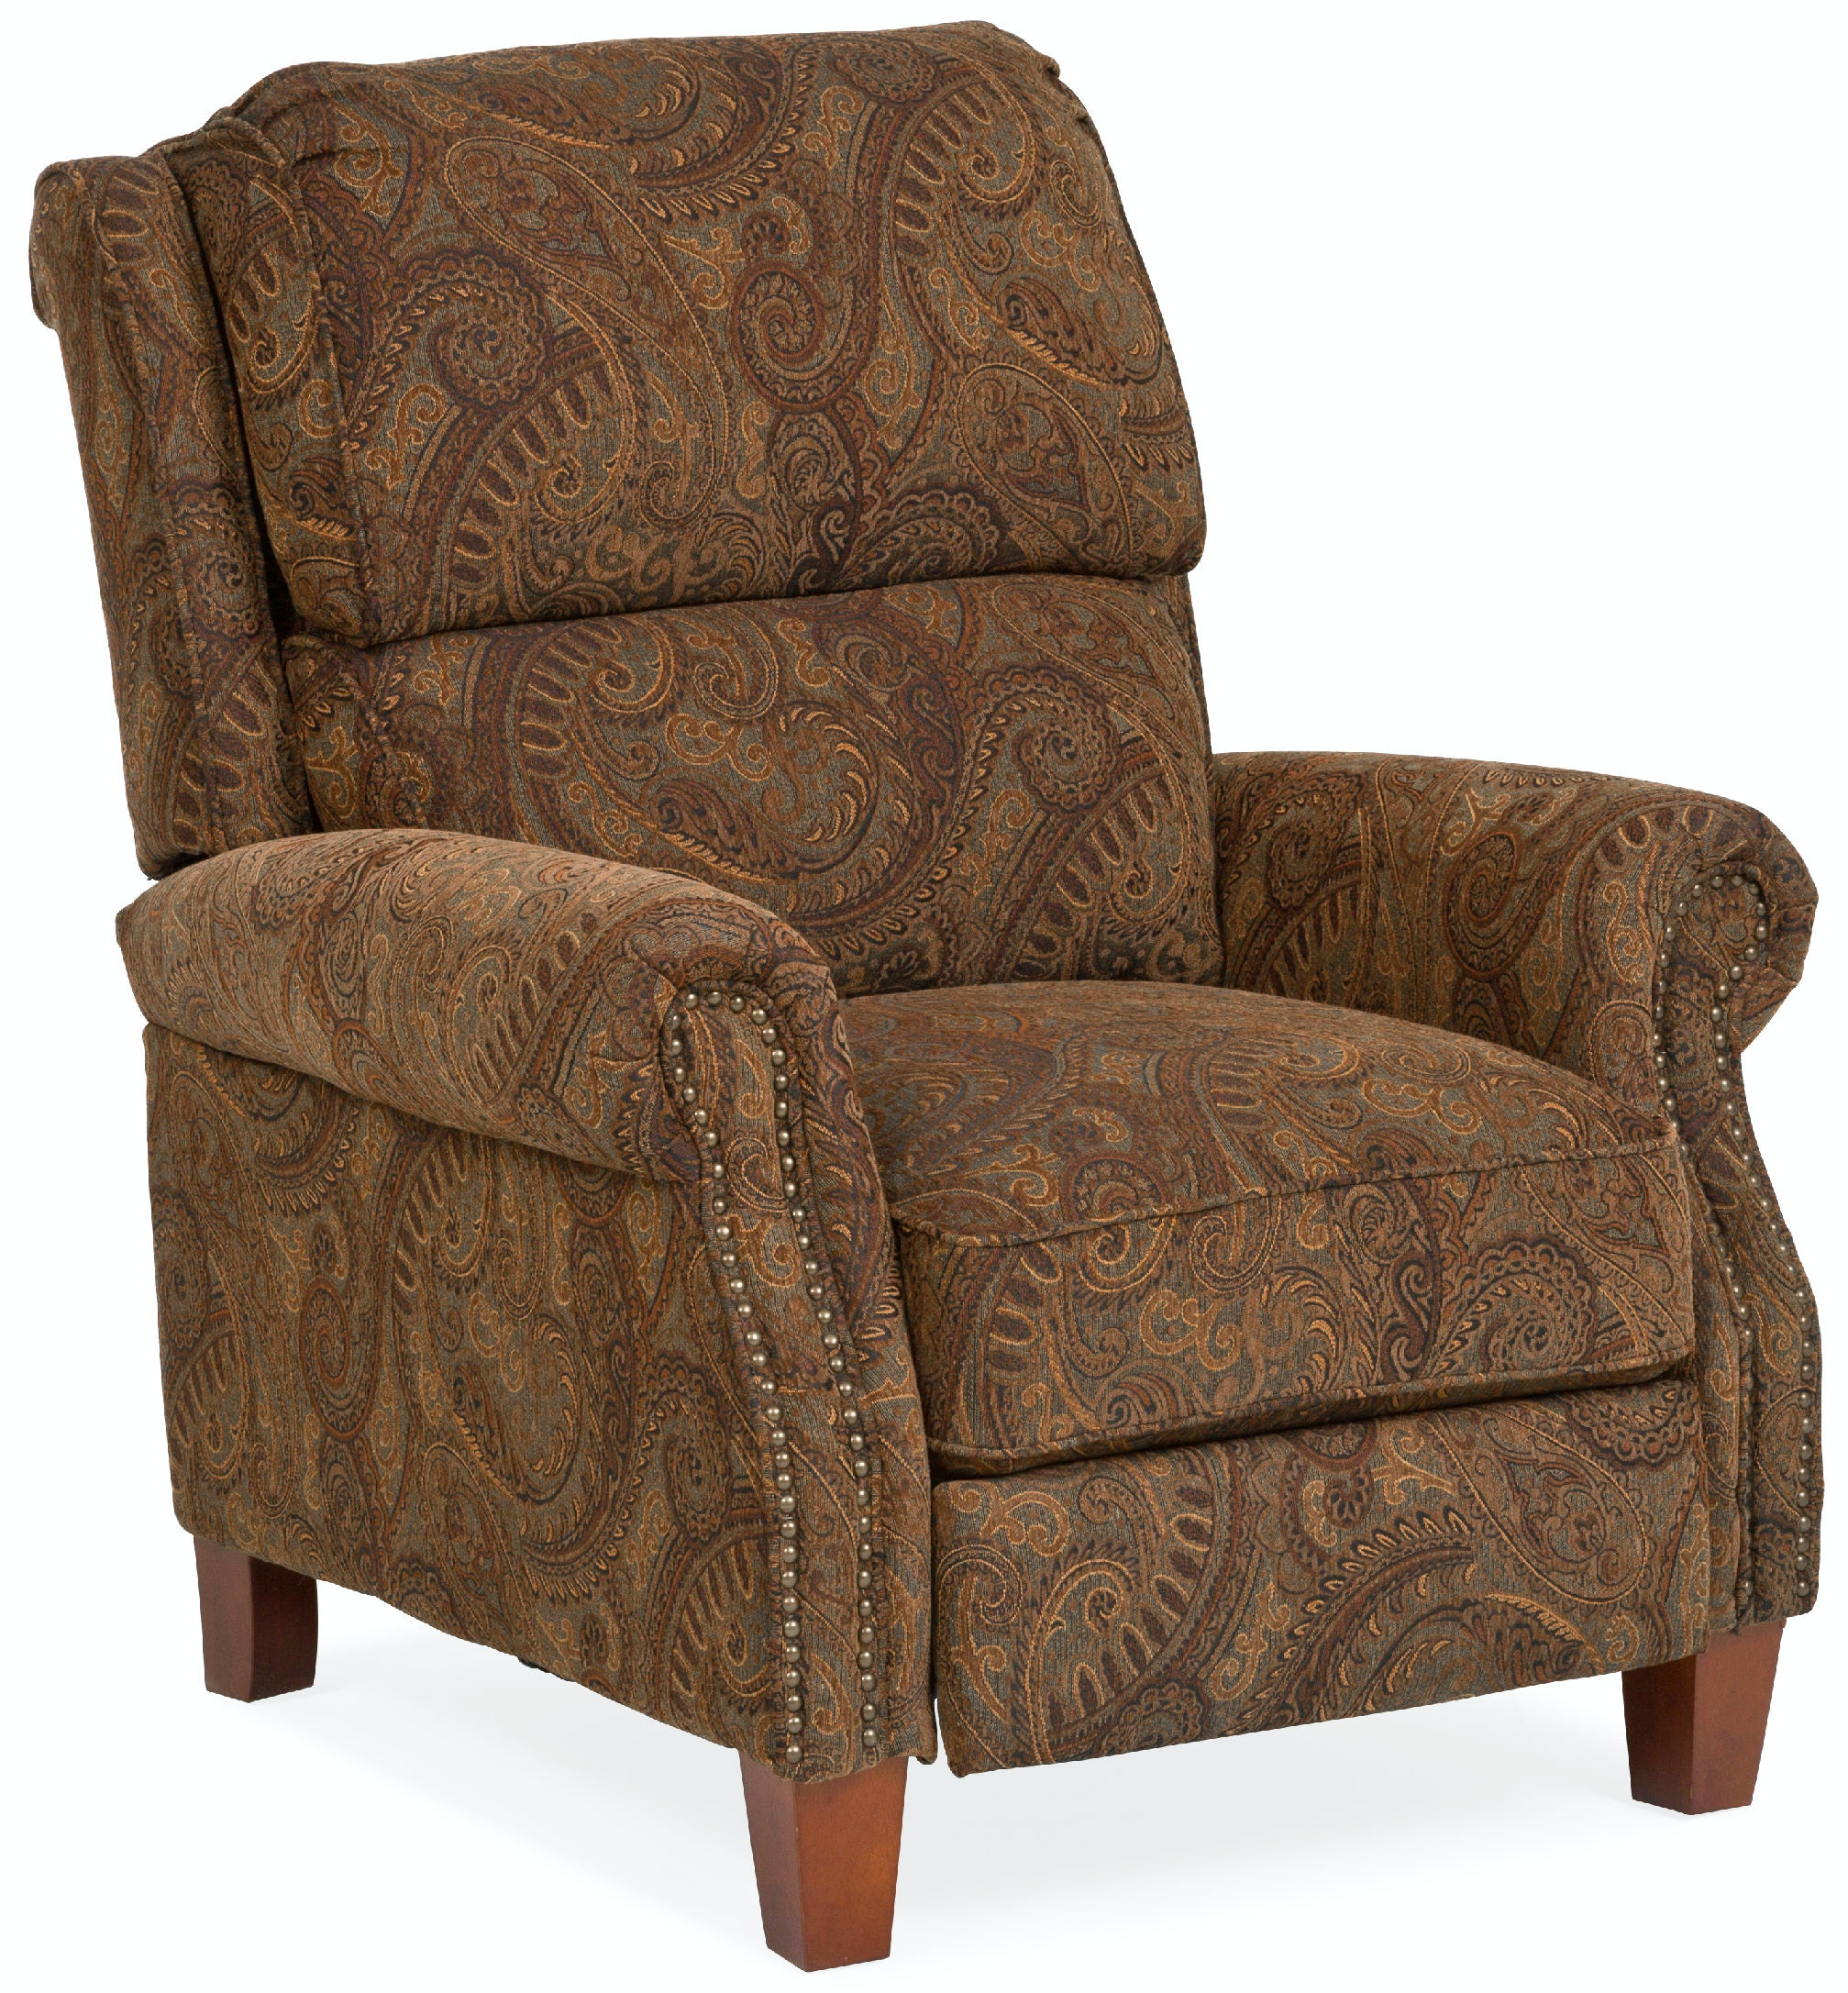 Beau William Manual Club Chair Recliner   PAISLEY ST:374237